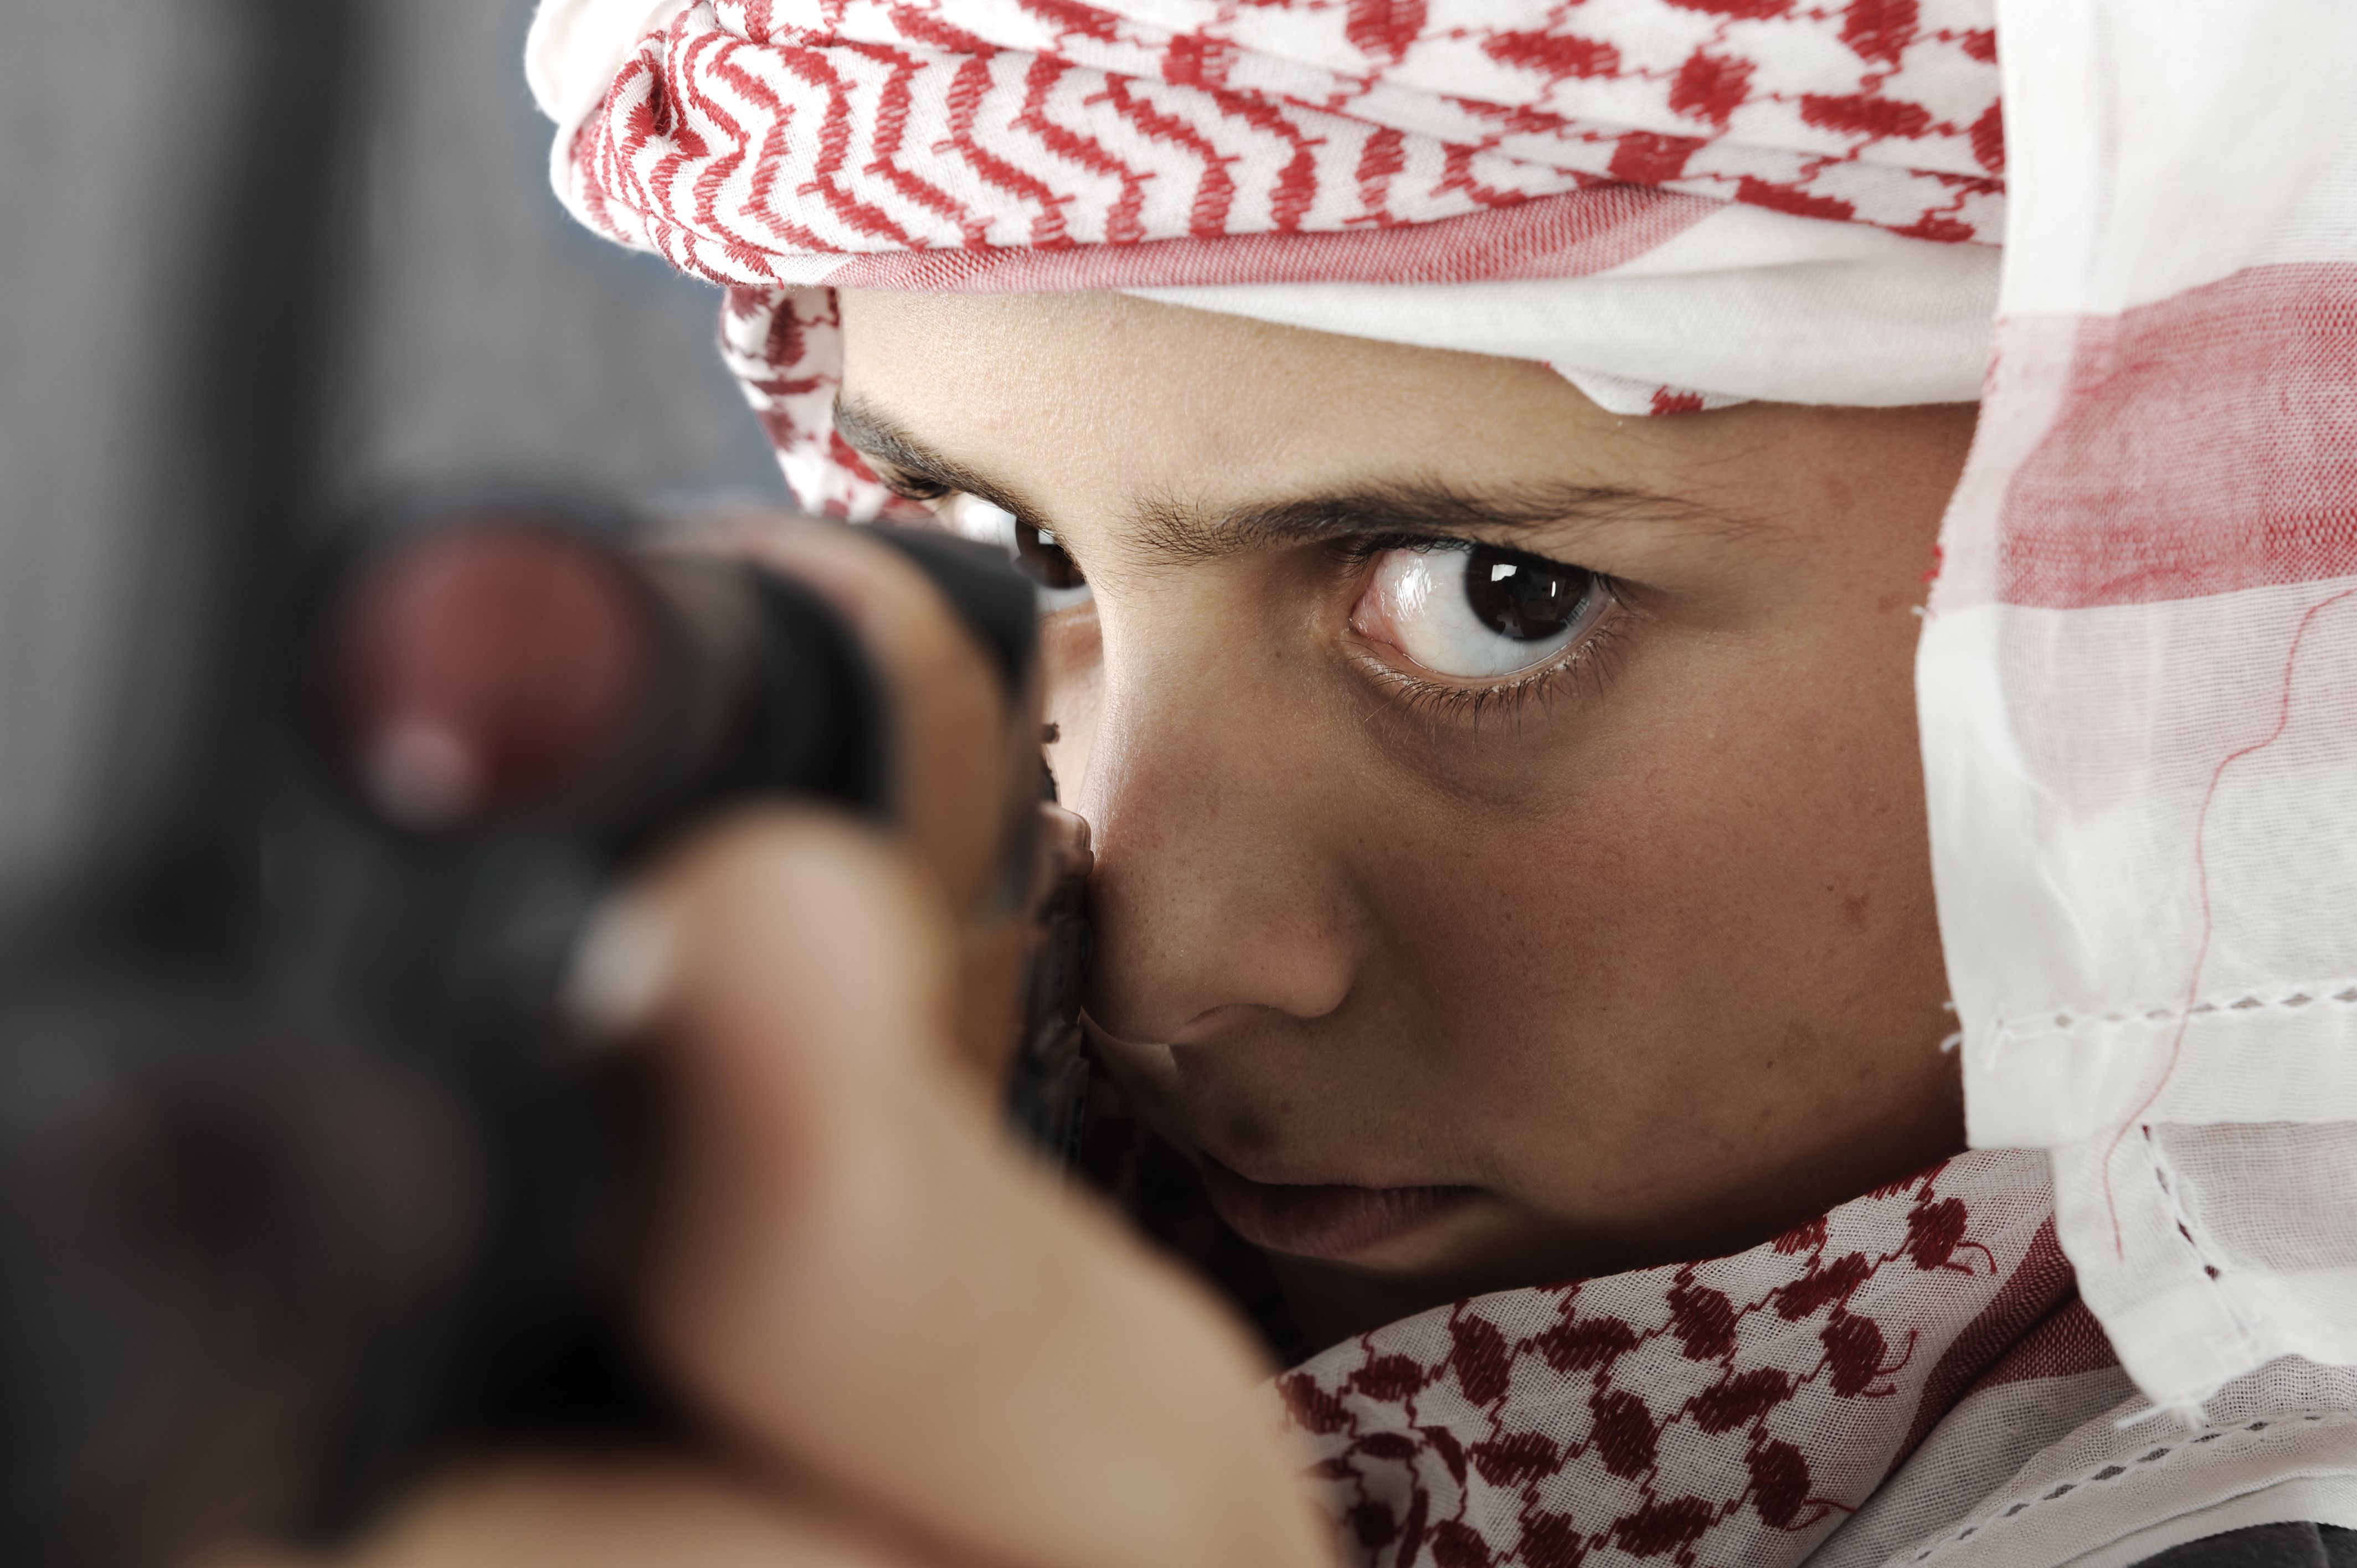 10 Countries That Recruit the Most Child Soldiers